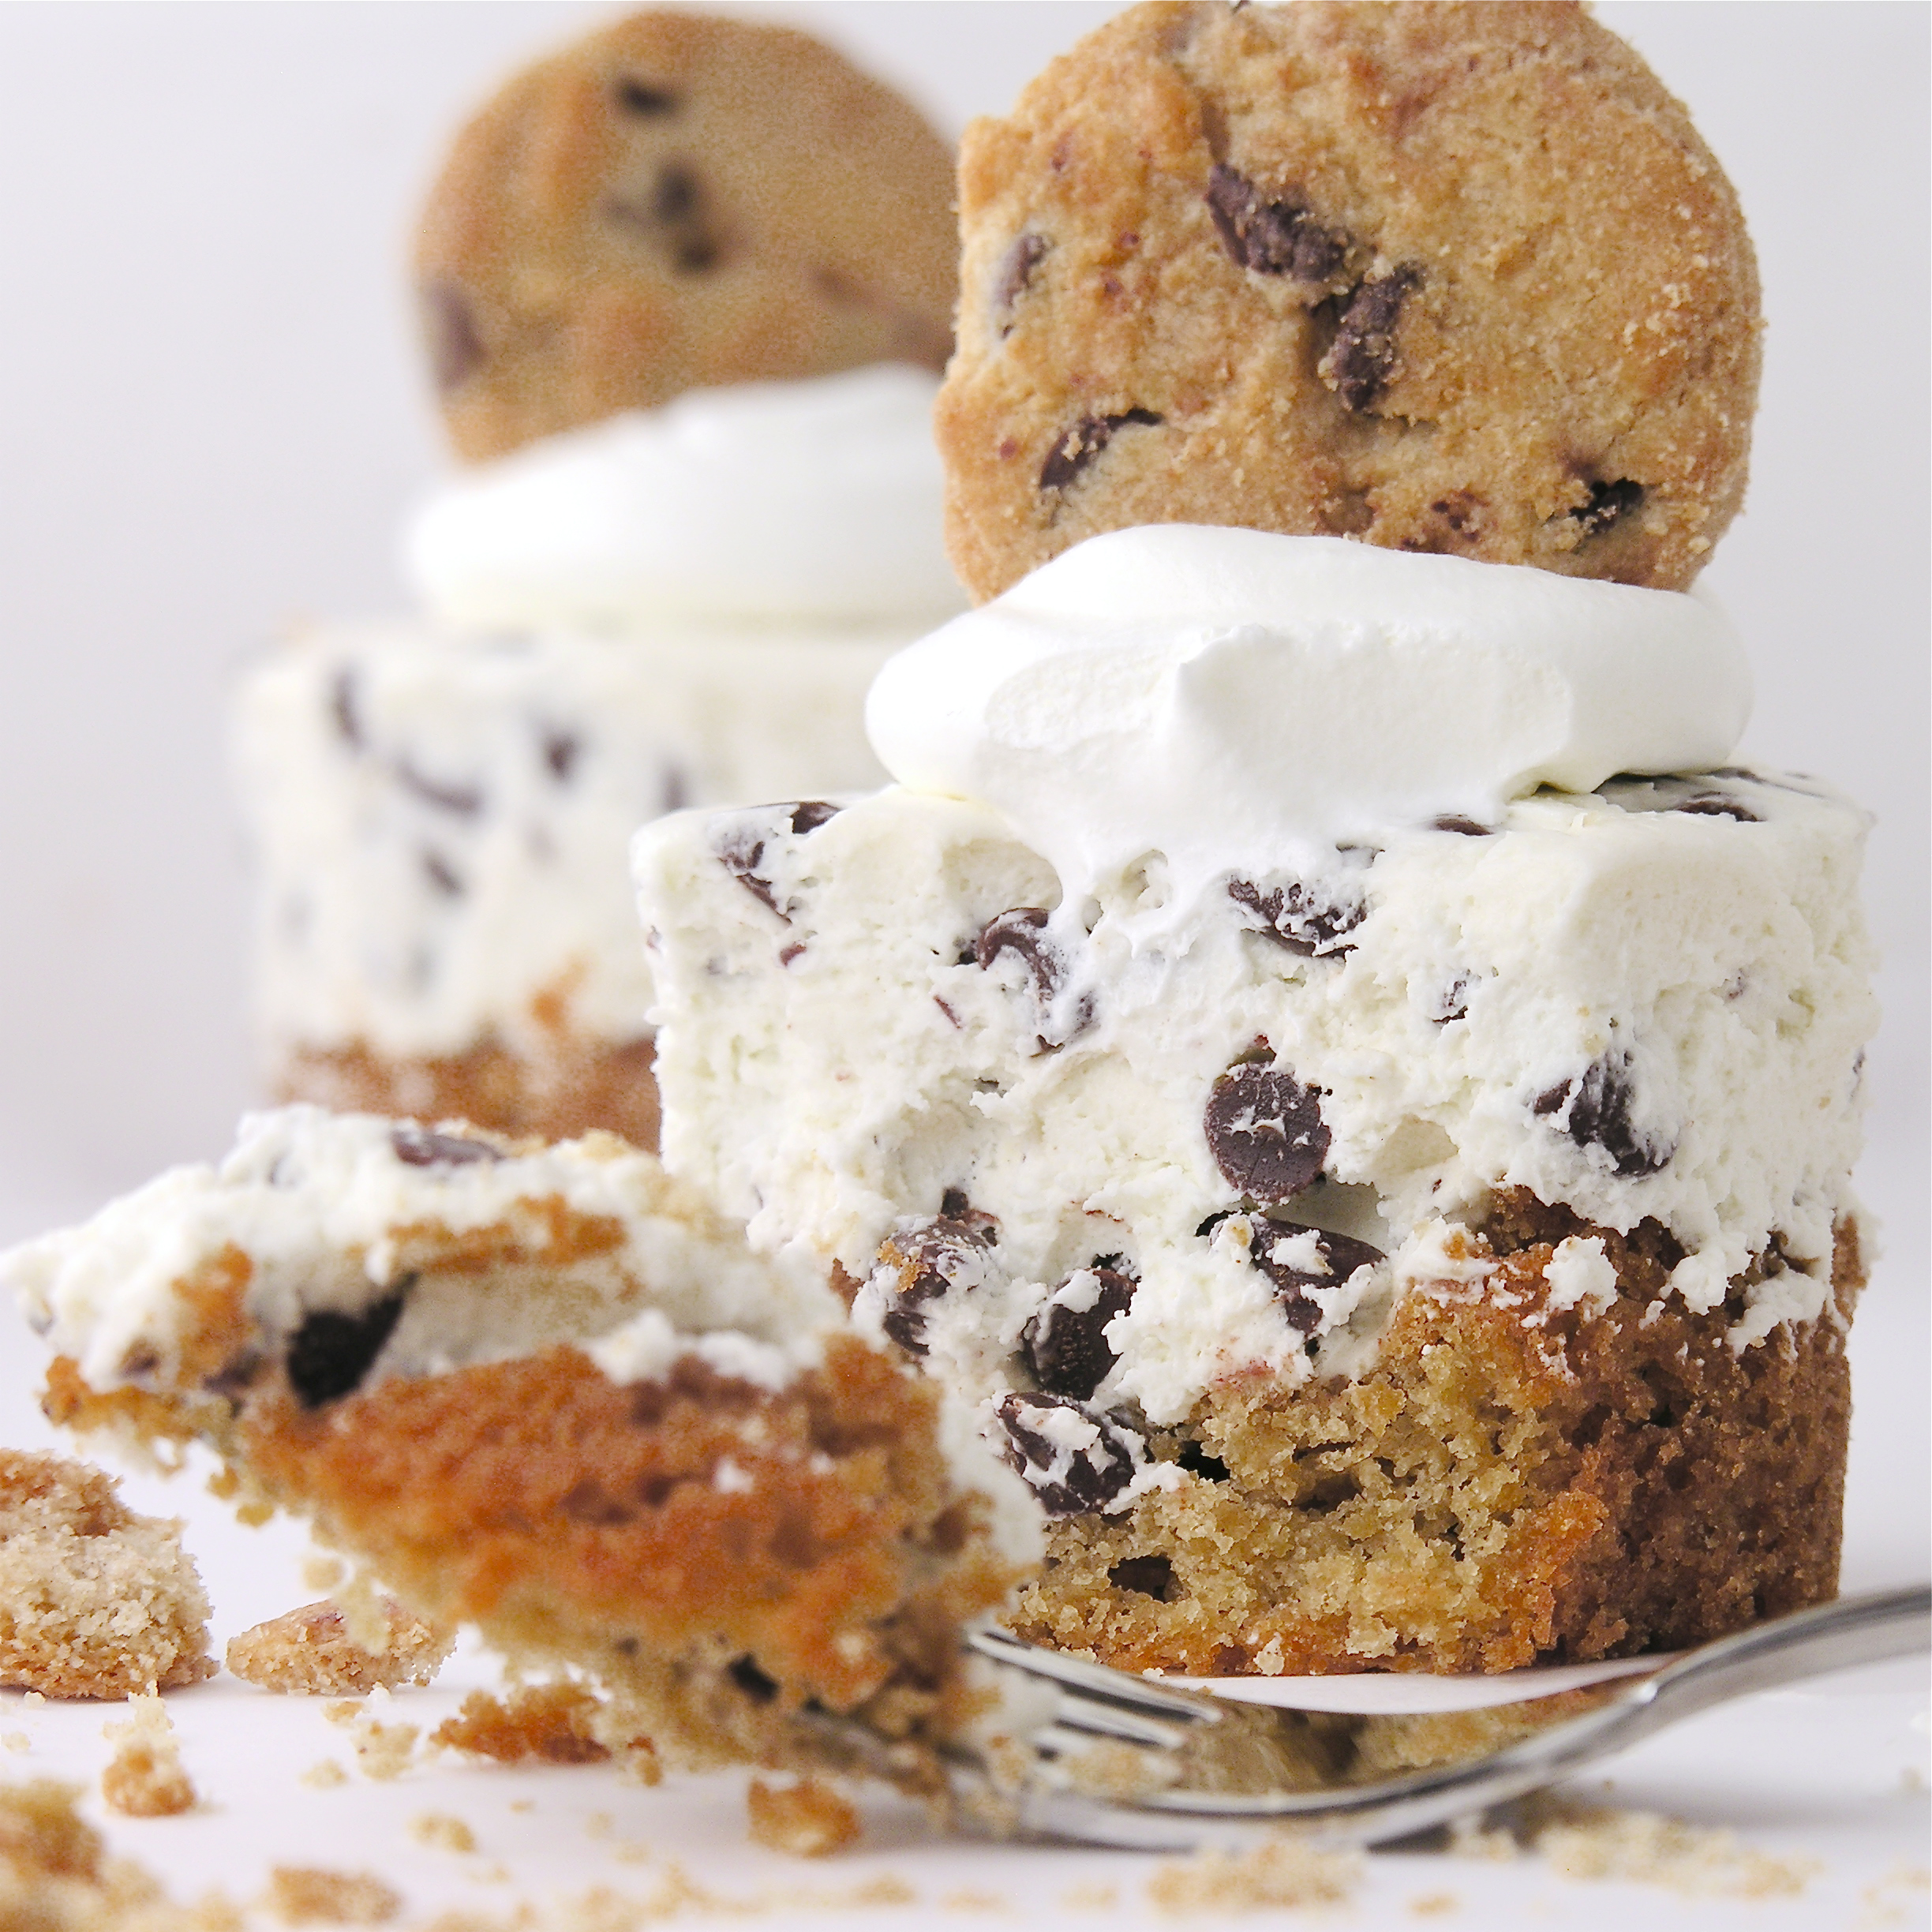 DECK THE HOLIDAY'S: CHOCOLATE CHIP COOKIE CHEESECAKE!